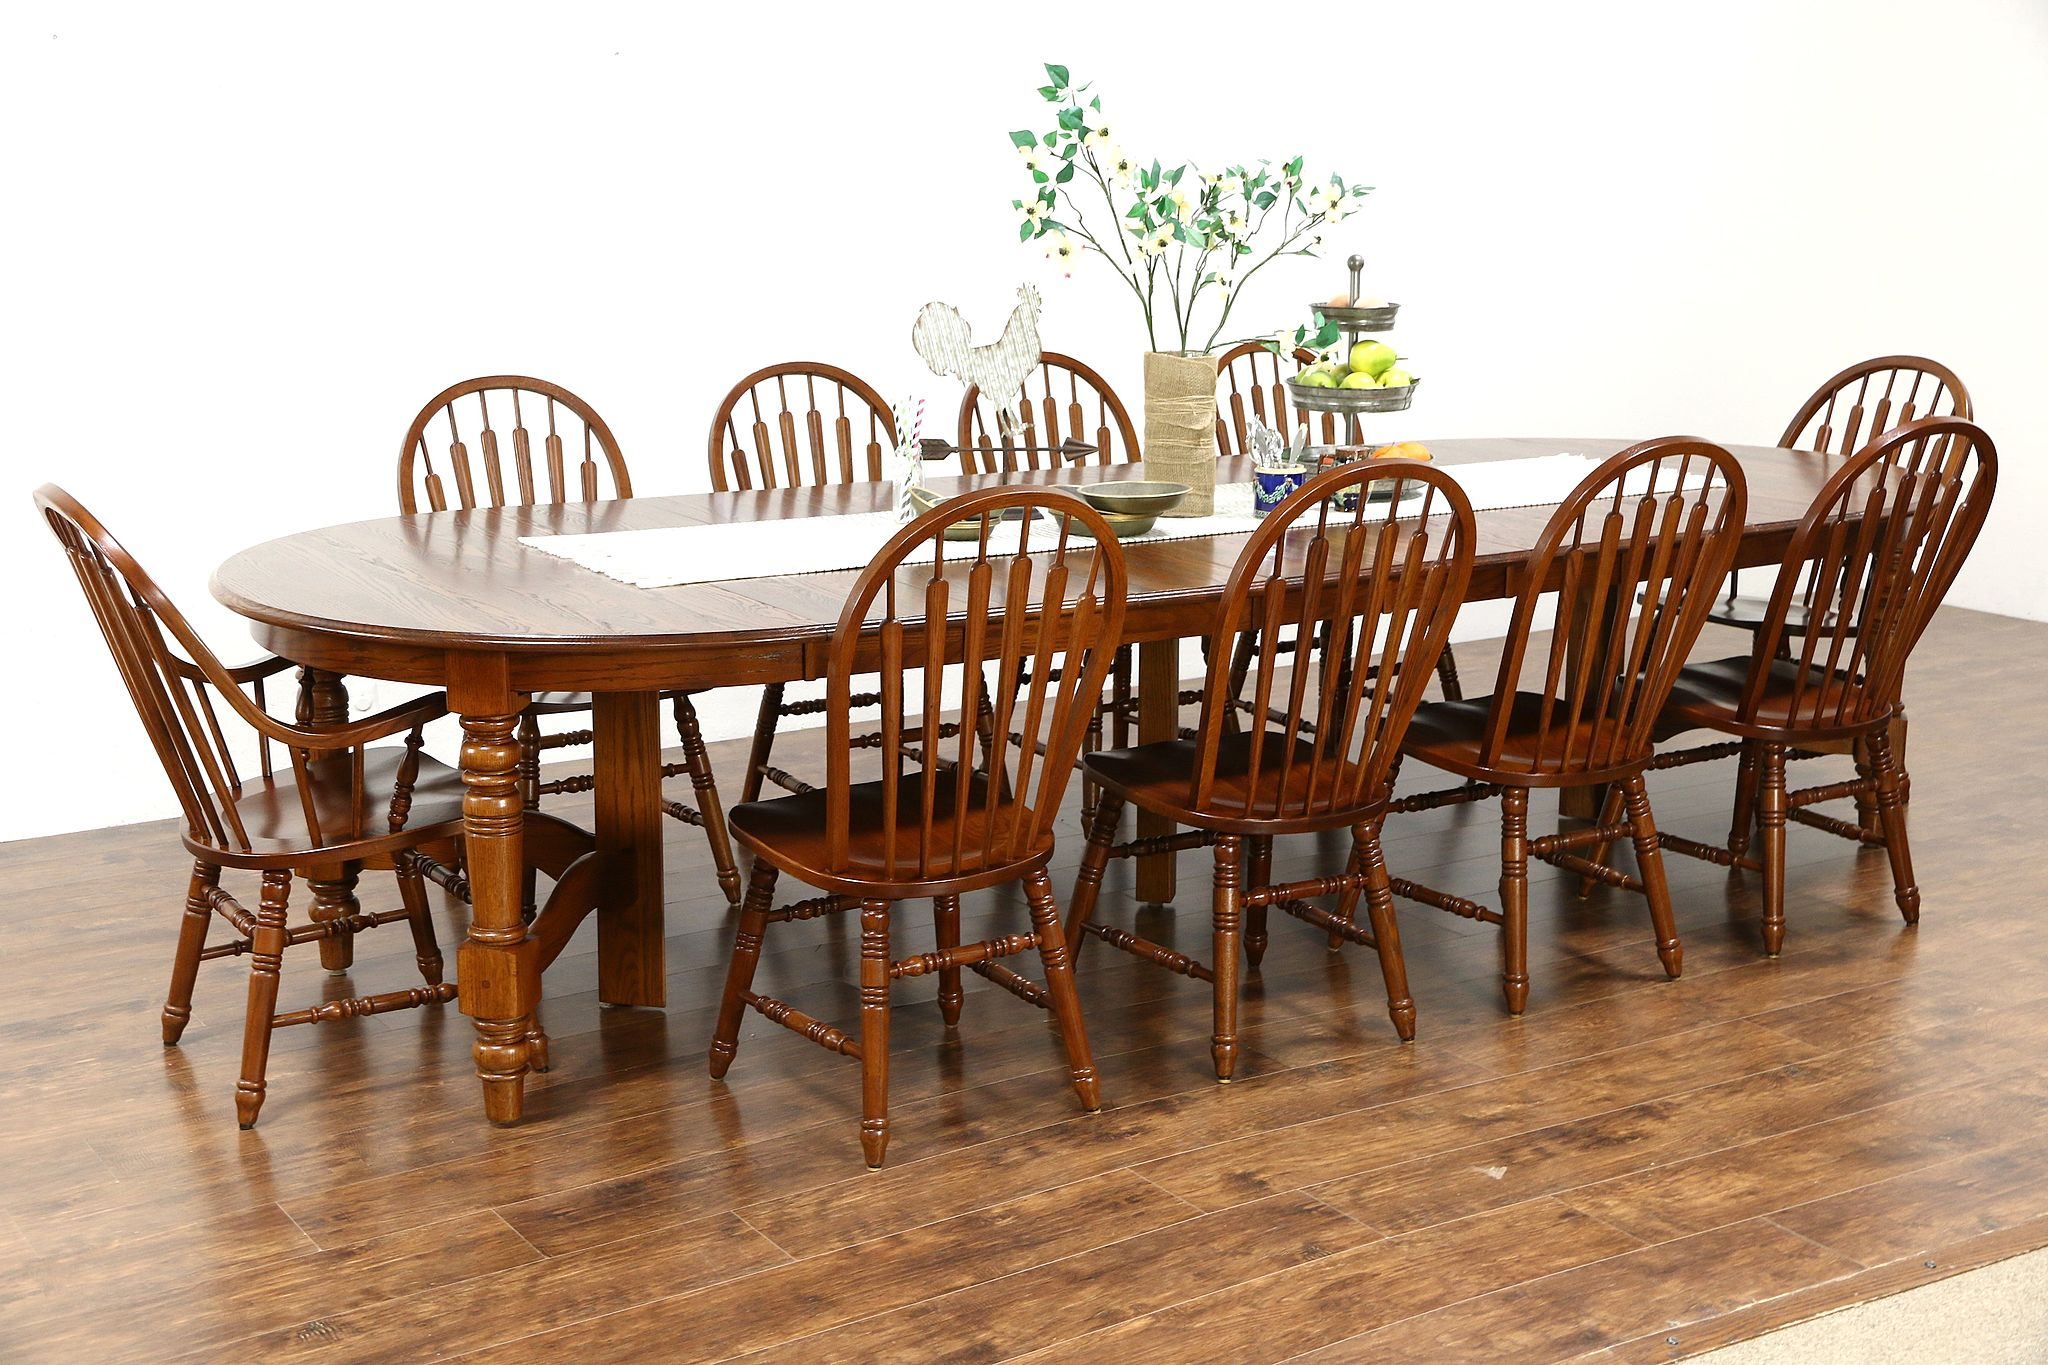 Pleasing Oak Vintage Dining Set 54 Table 8 Leaves 10 Chairs Richardson Bros Wi Ncnpc Chair Design For Home Ncnpcorg